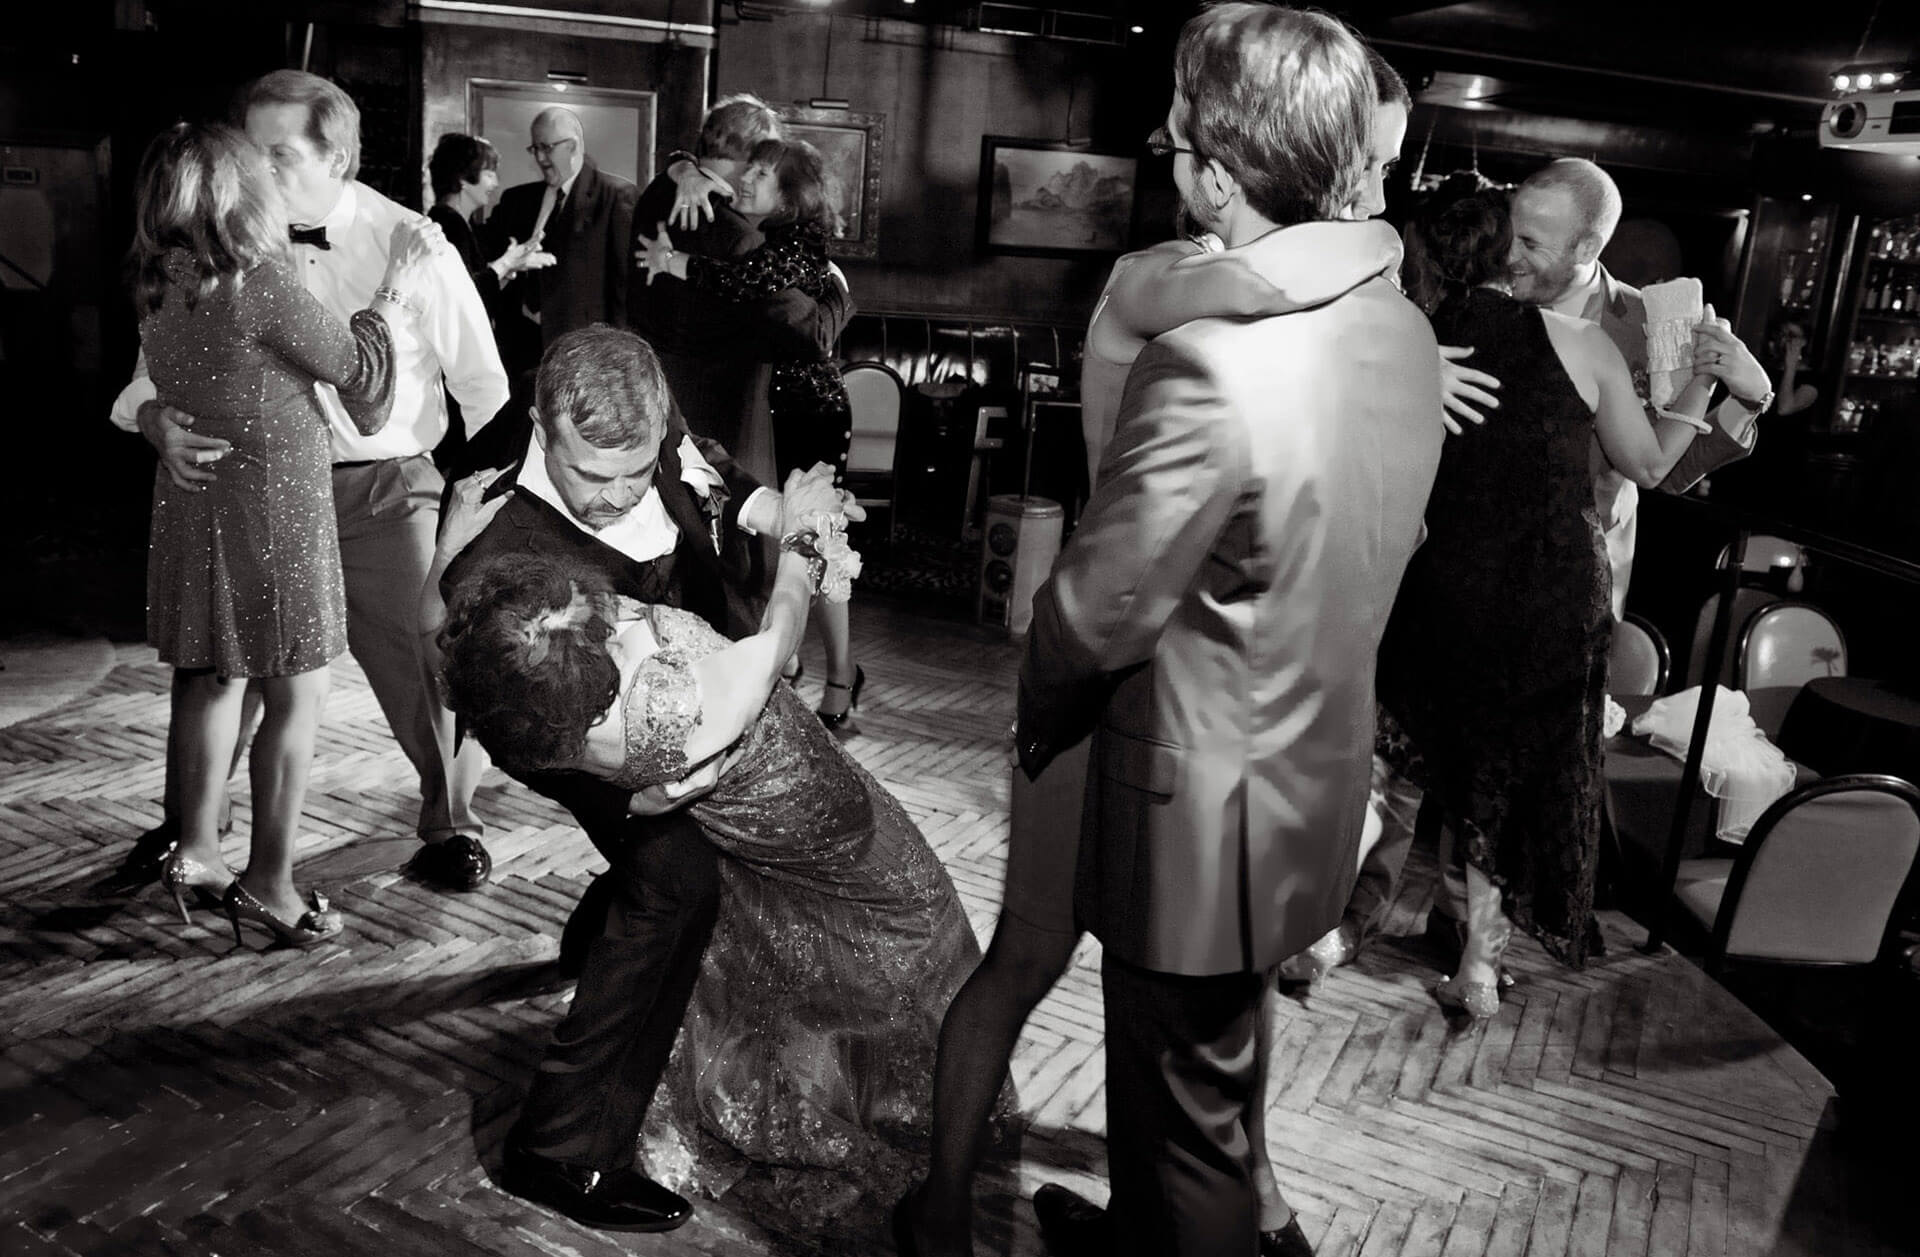 The dance floor is open and packed at Cliff Bells for an intimate jazz themed wedding in downtown Detroit, Michigan.